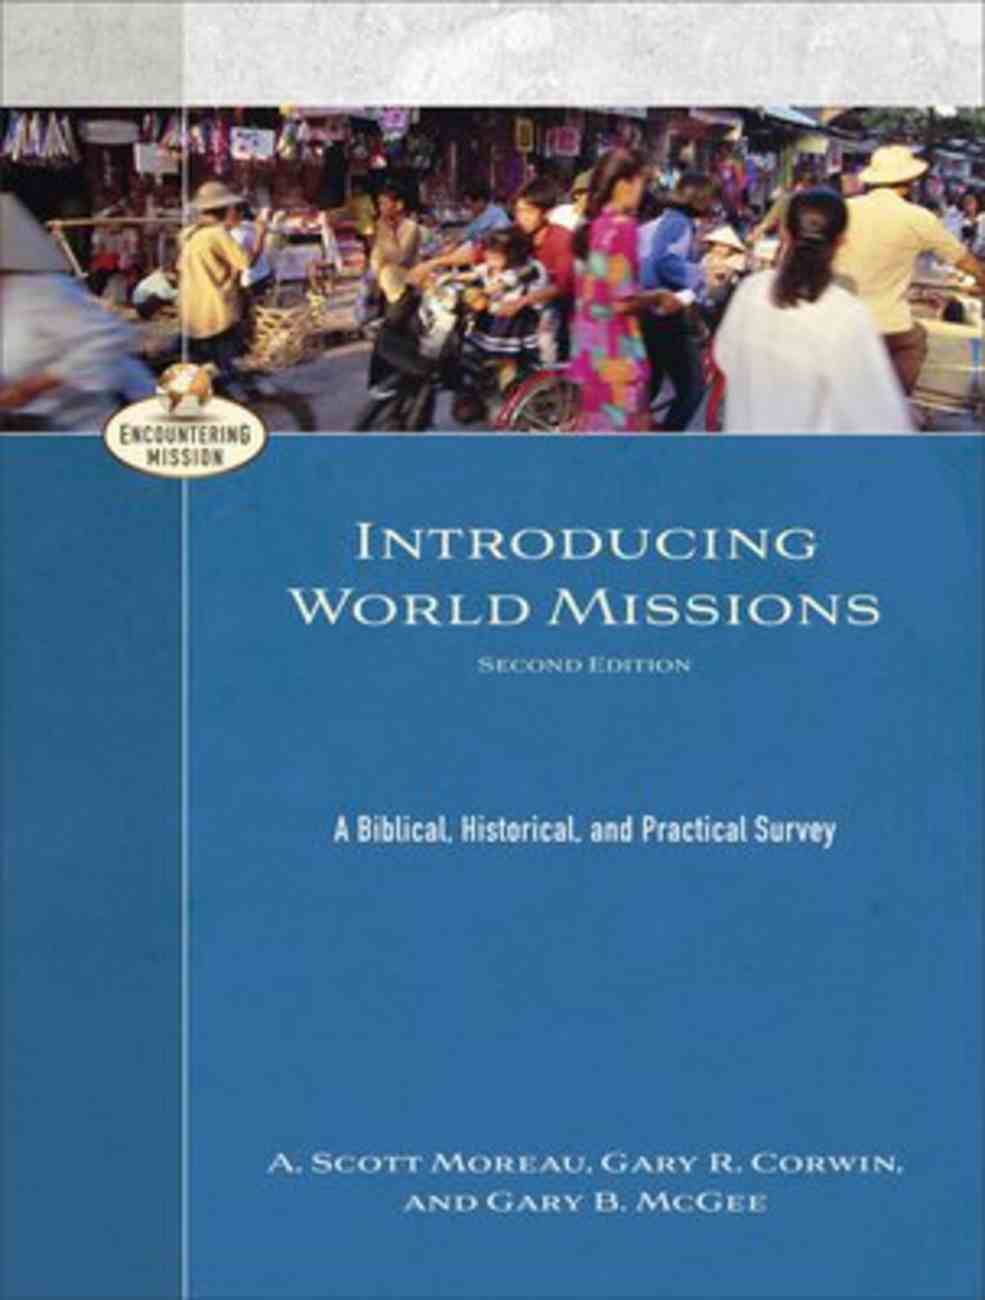 Introducing World Missions: A Biblical, Historical, and Practical Survey (Encountering Mission Series) Paperback